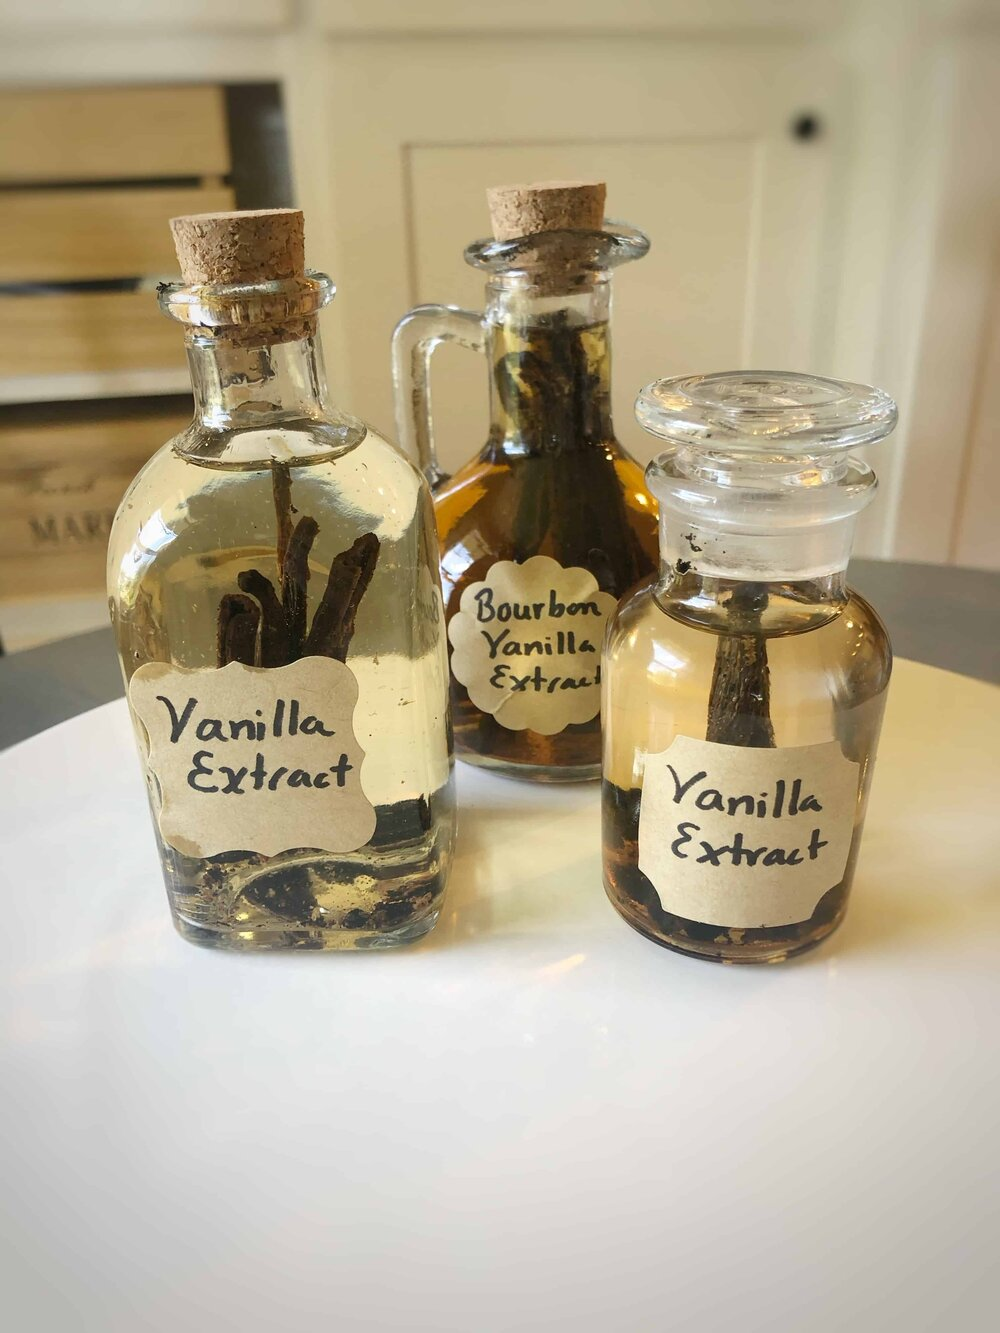 3 bottle of homemade vanilla extract